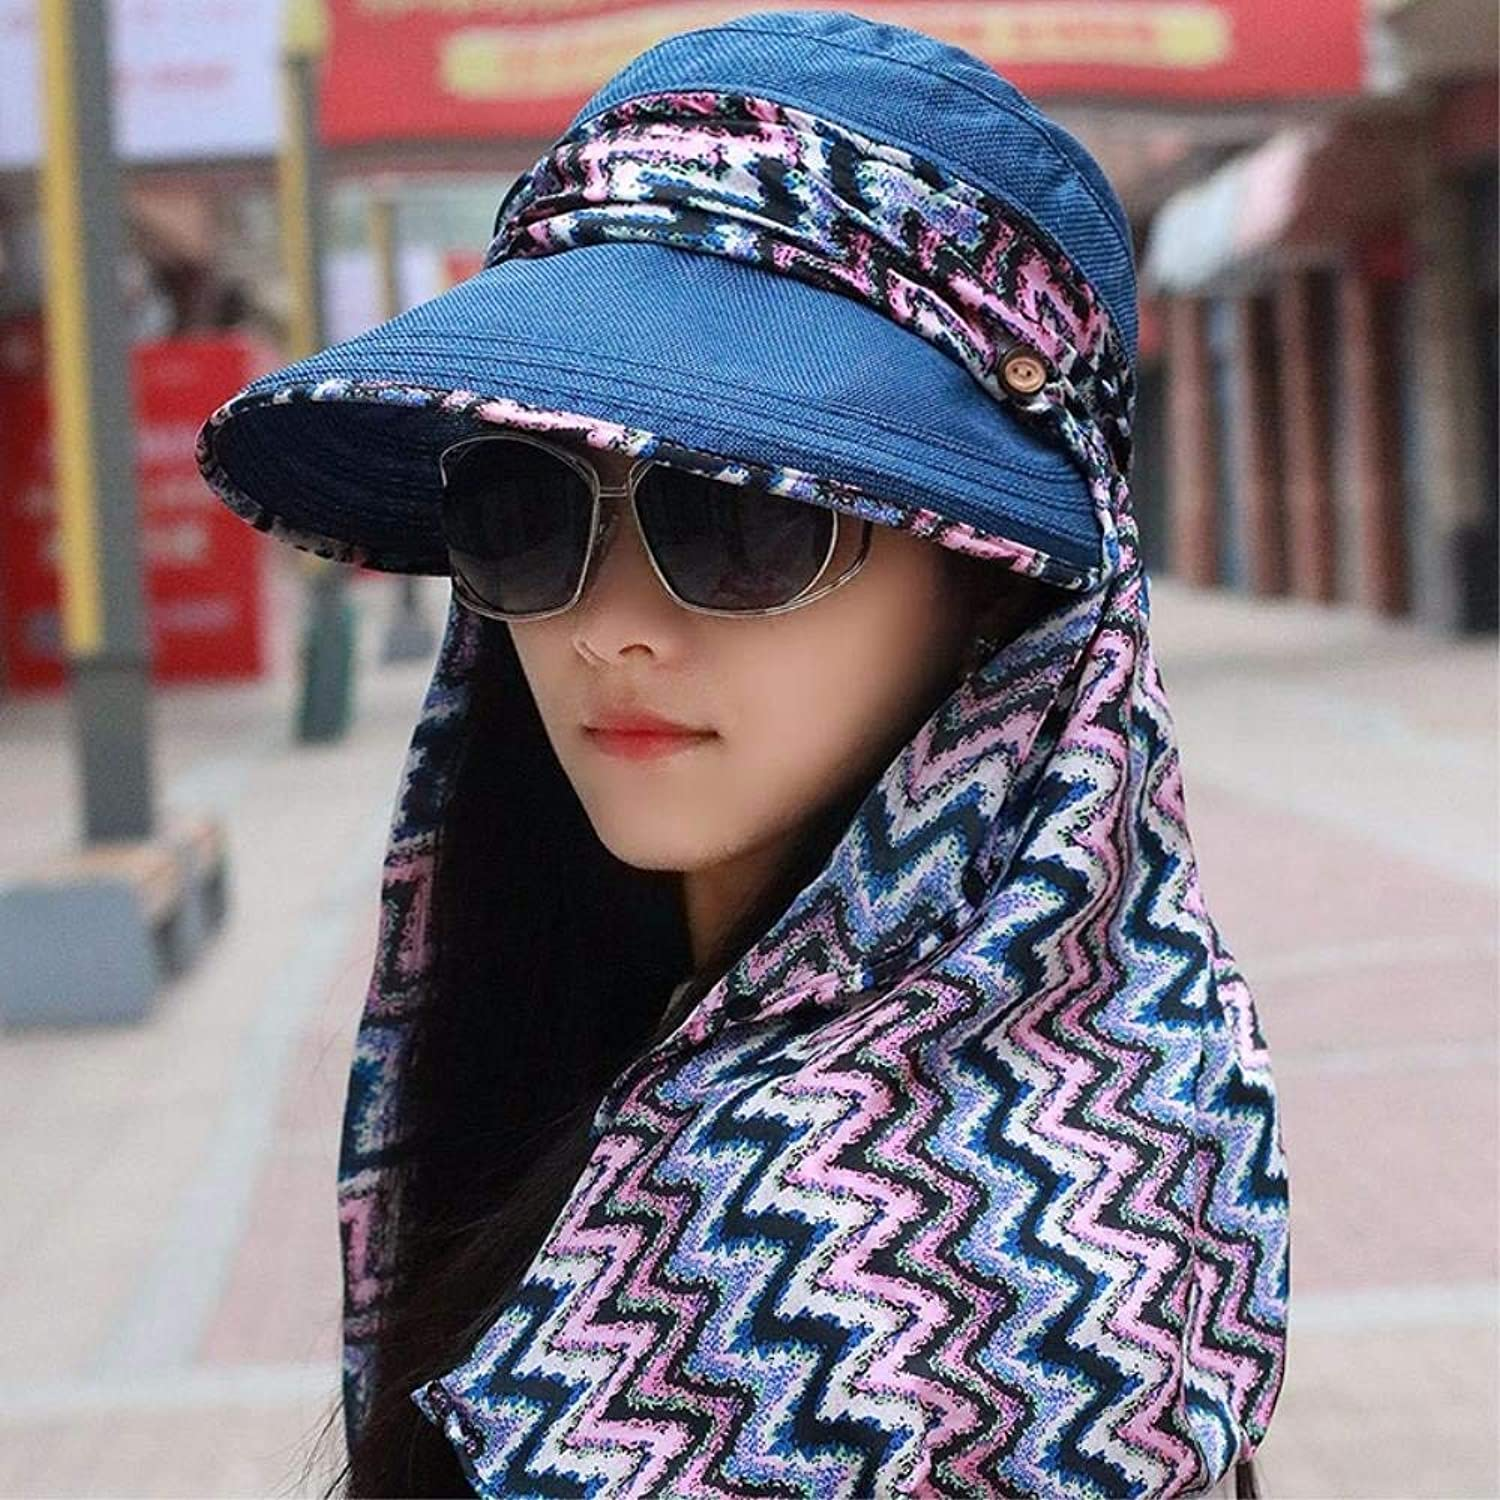 Dingkun Hat female summer excursions outside the present visor cycling sunlight hats fold cool Cap